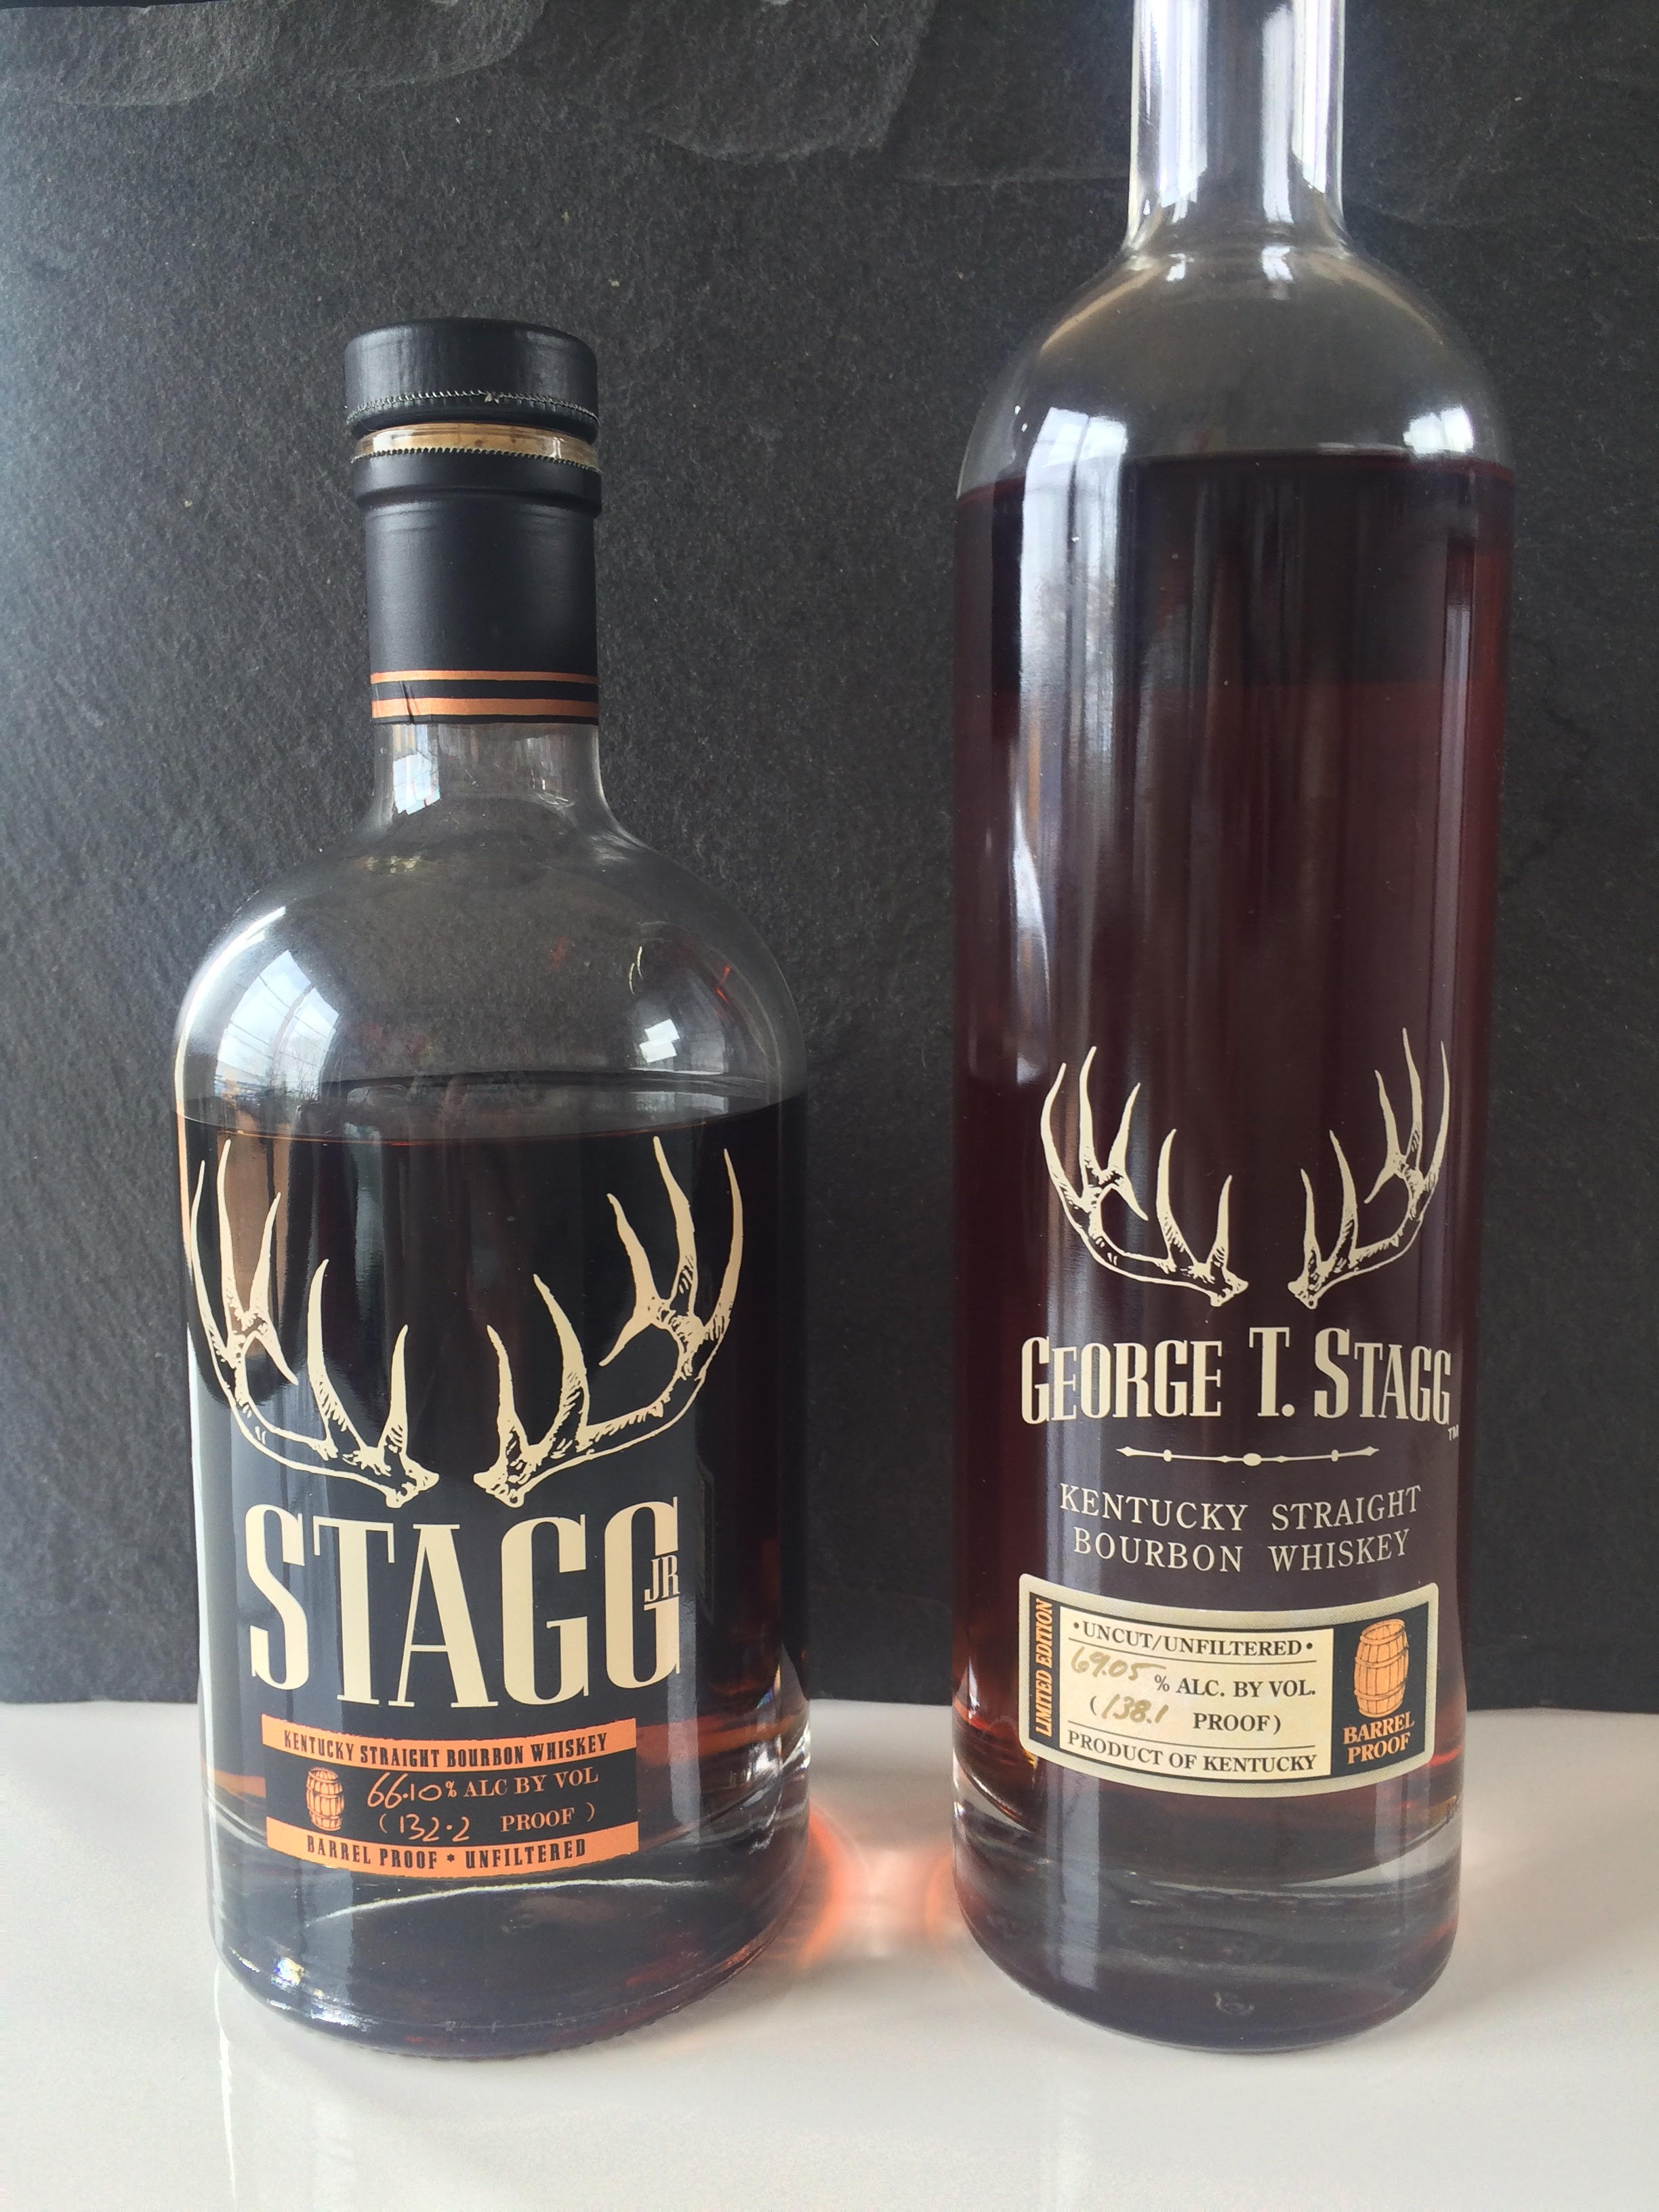 George T. Stagg vs. Stagg Jr.